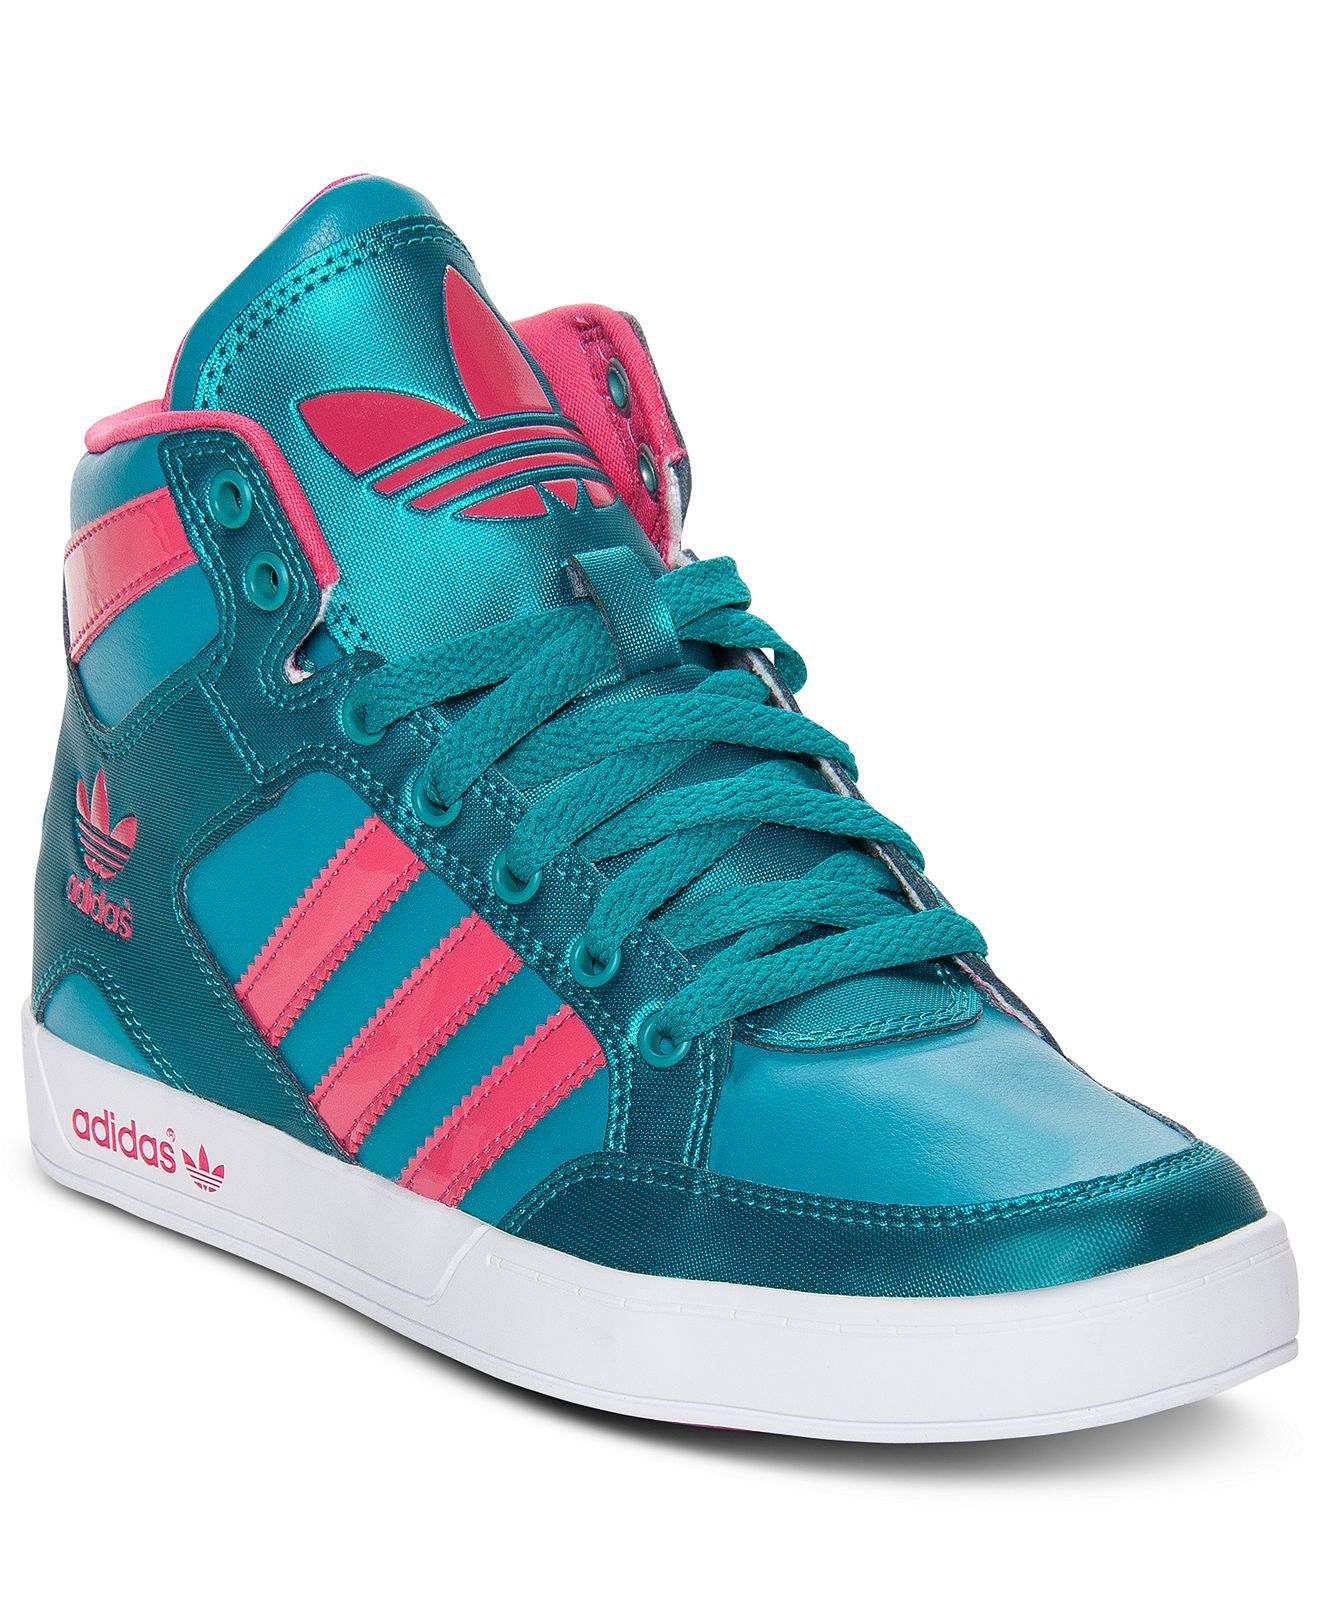 593d20f01d0d32 adidas Women s Shoes